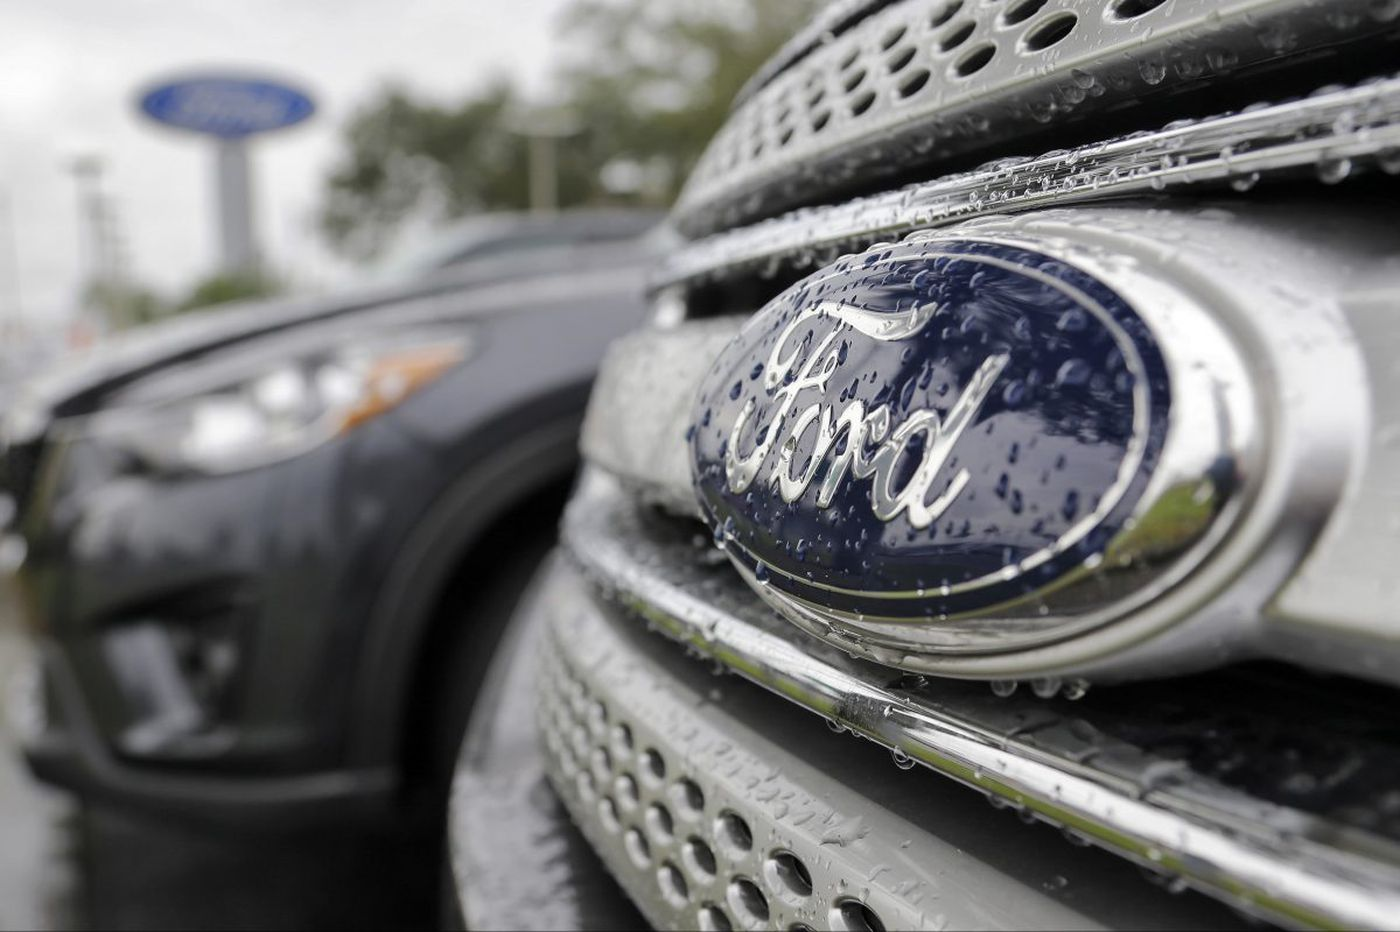 Cherry Hill Ford dealership owes $150,000 to Chinese techs it underpaid